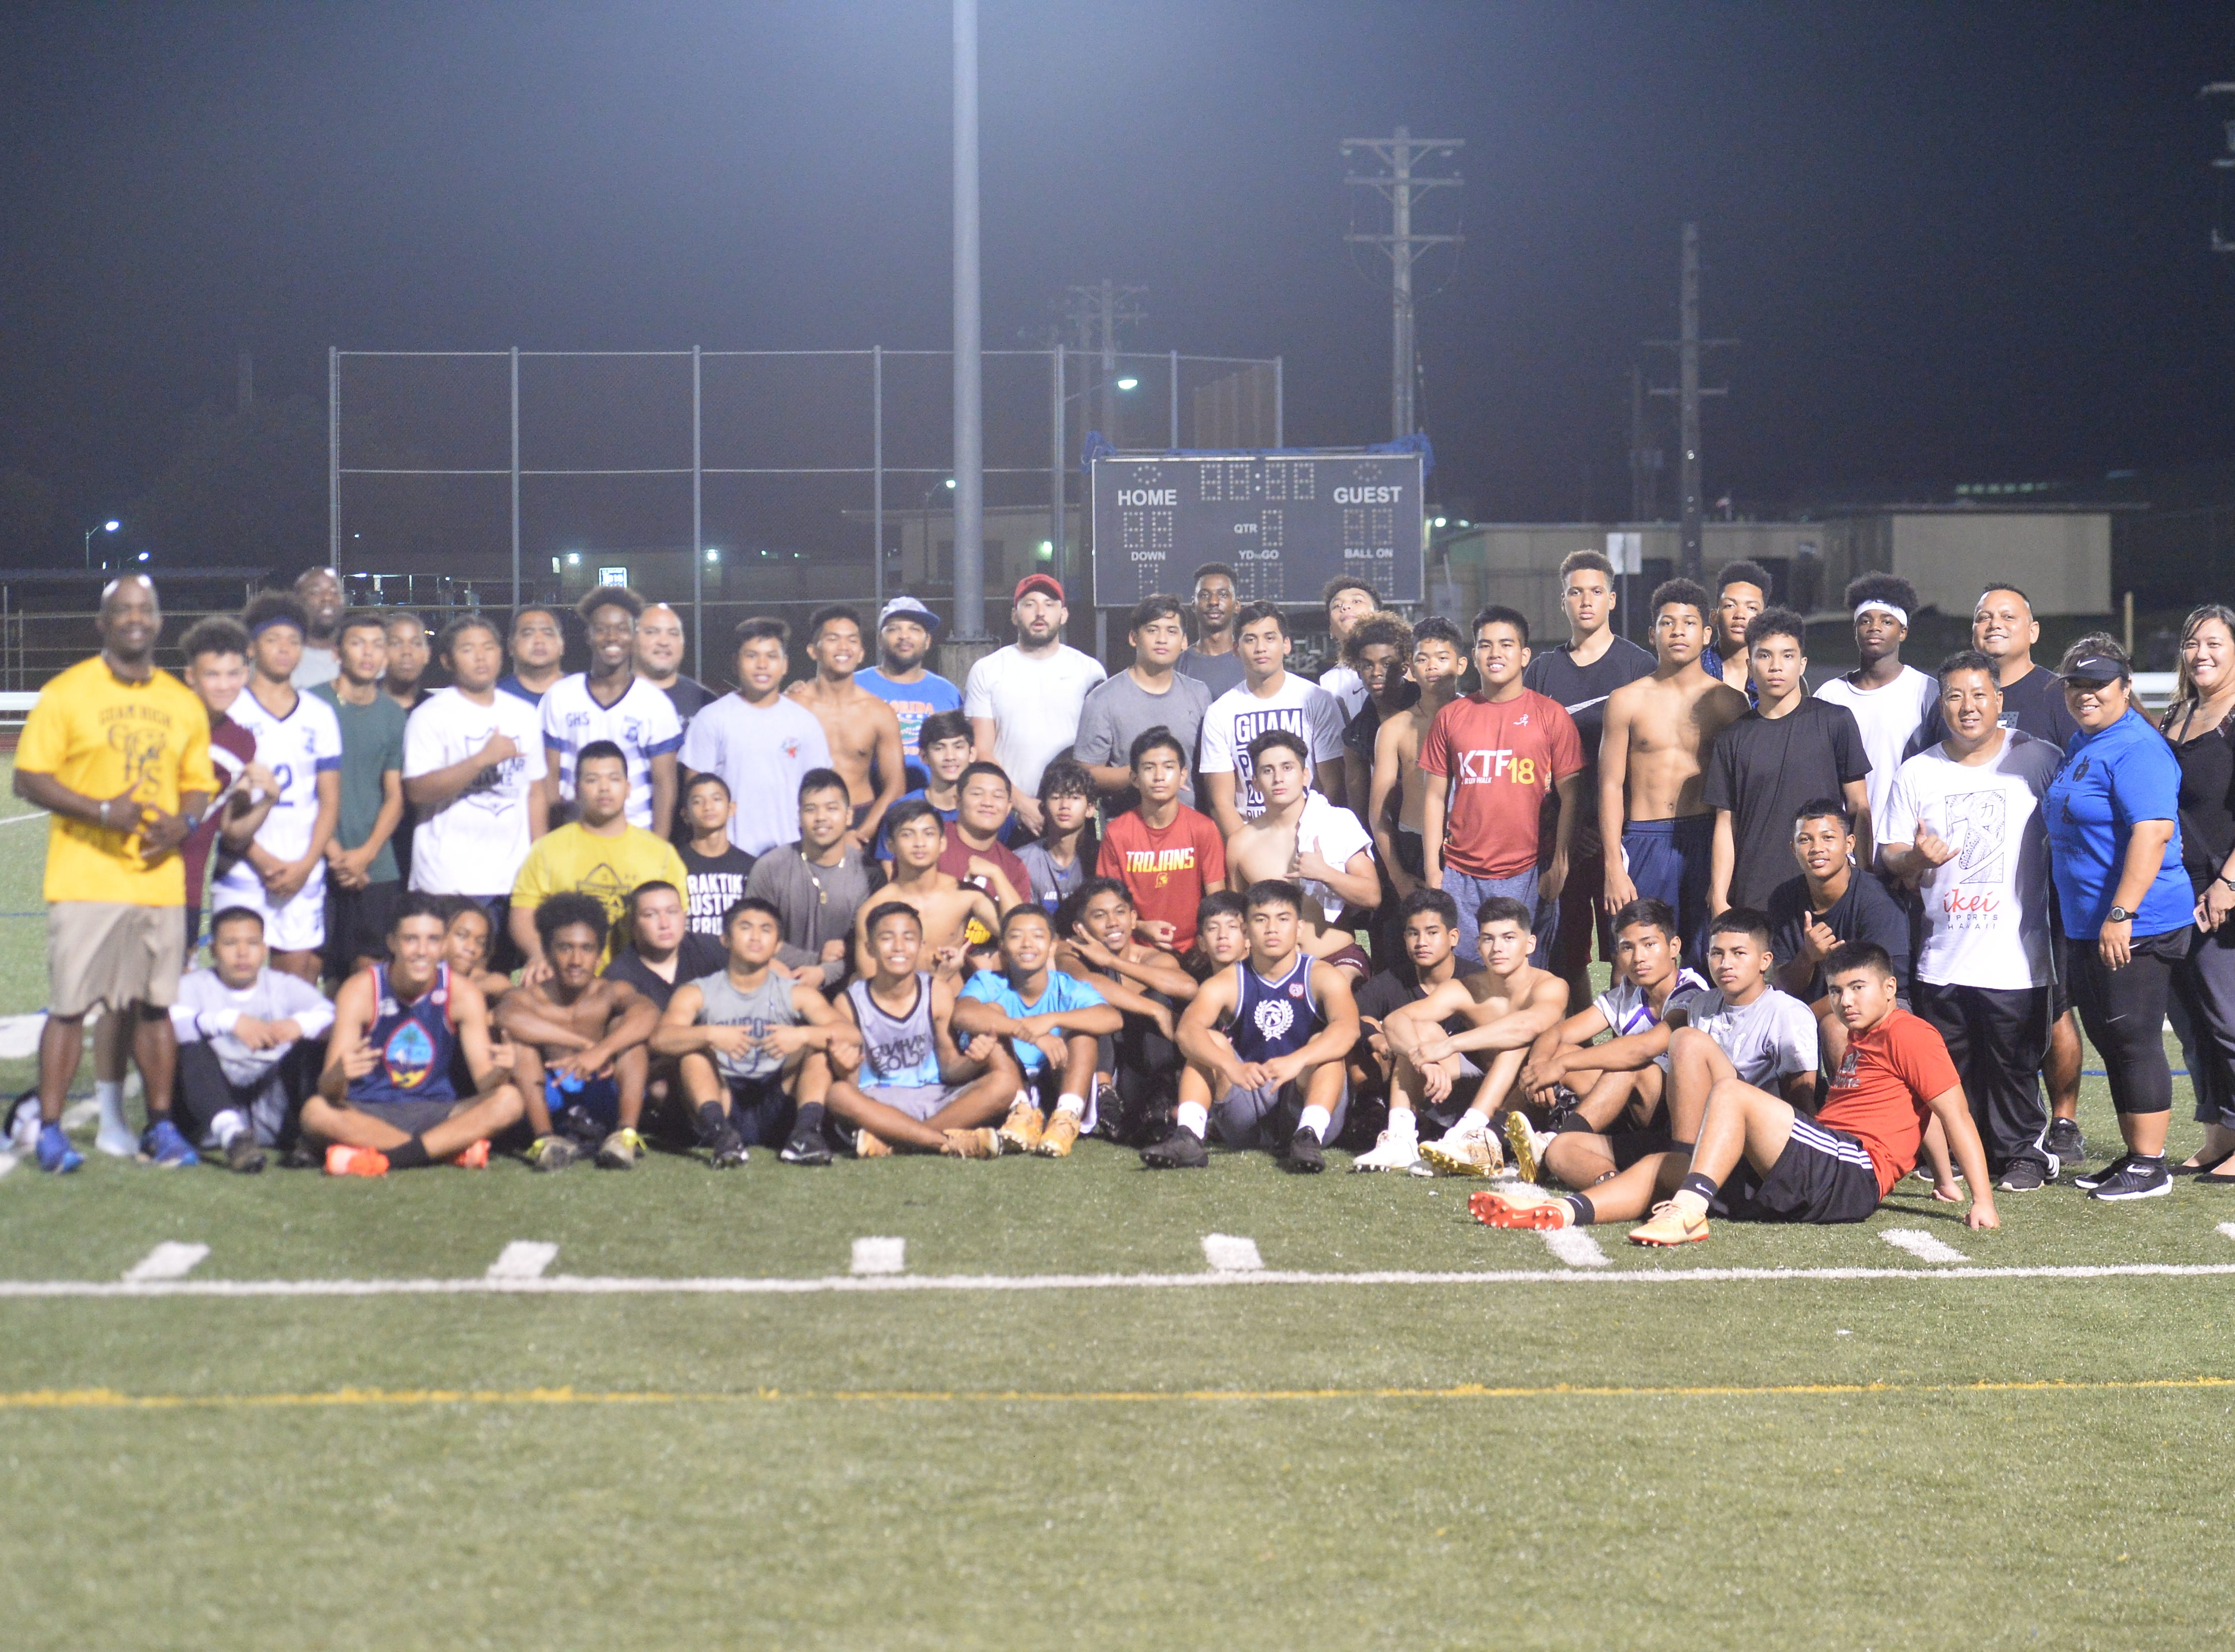 The underclassmen ruled the final day of 2nd College Football Showcase and Combine Nov. 15 at Guam High.